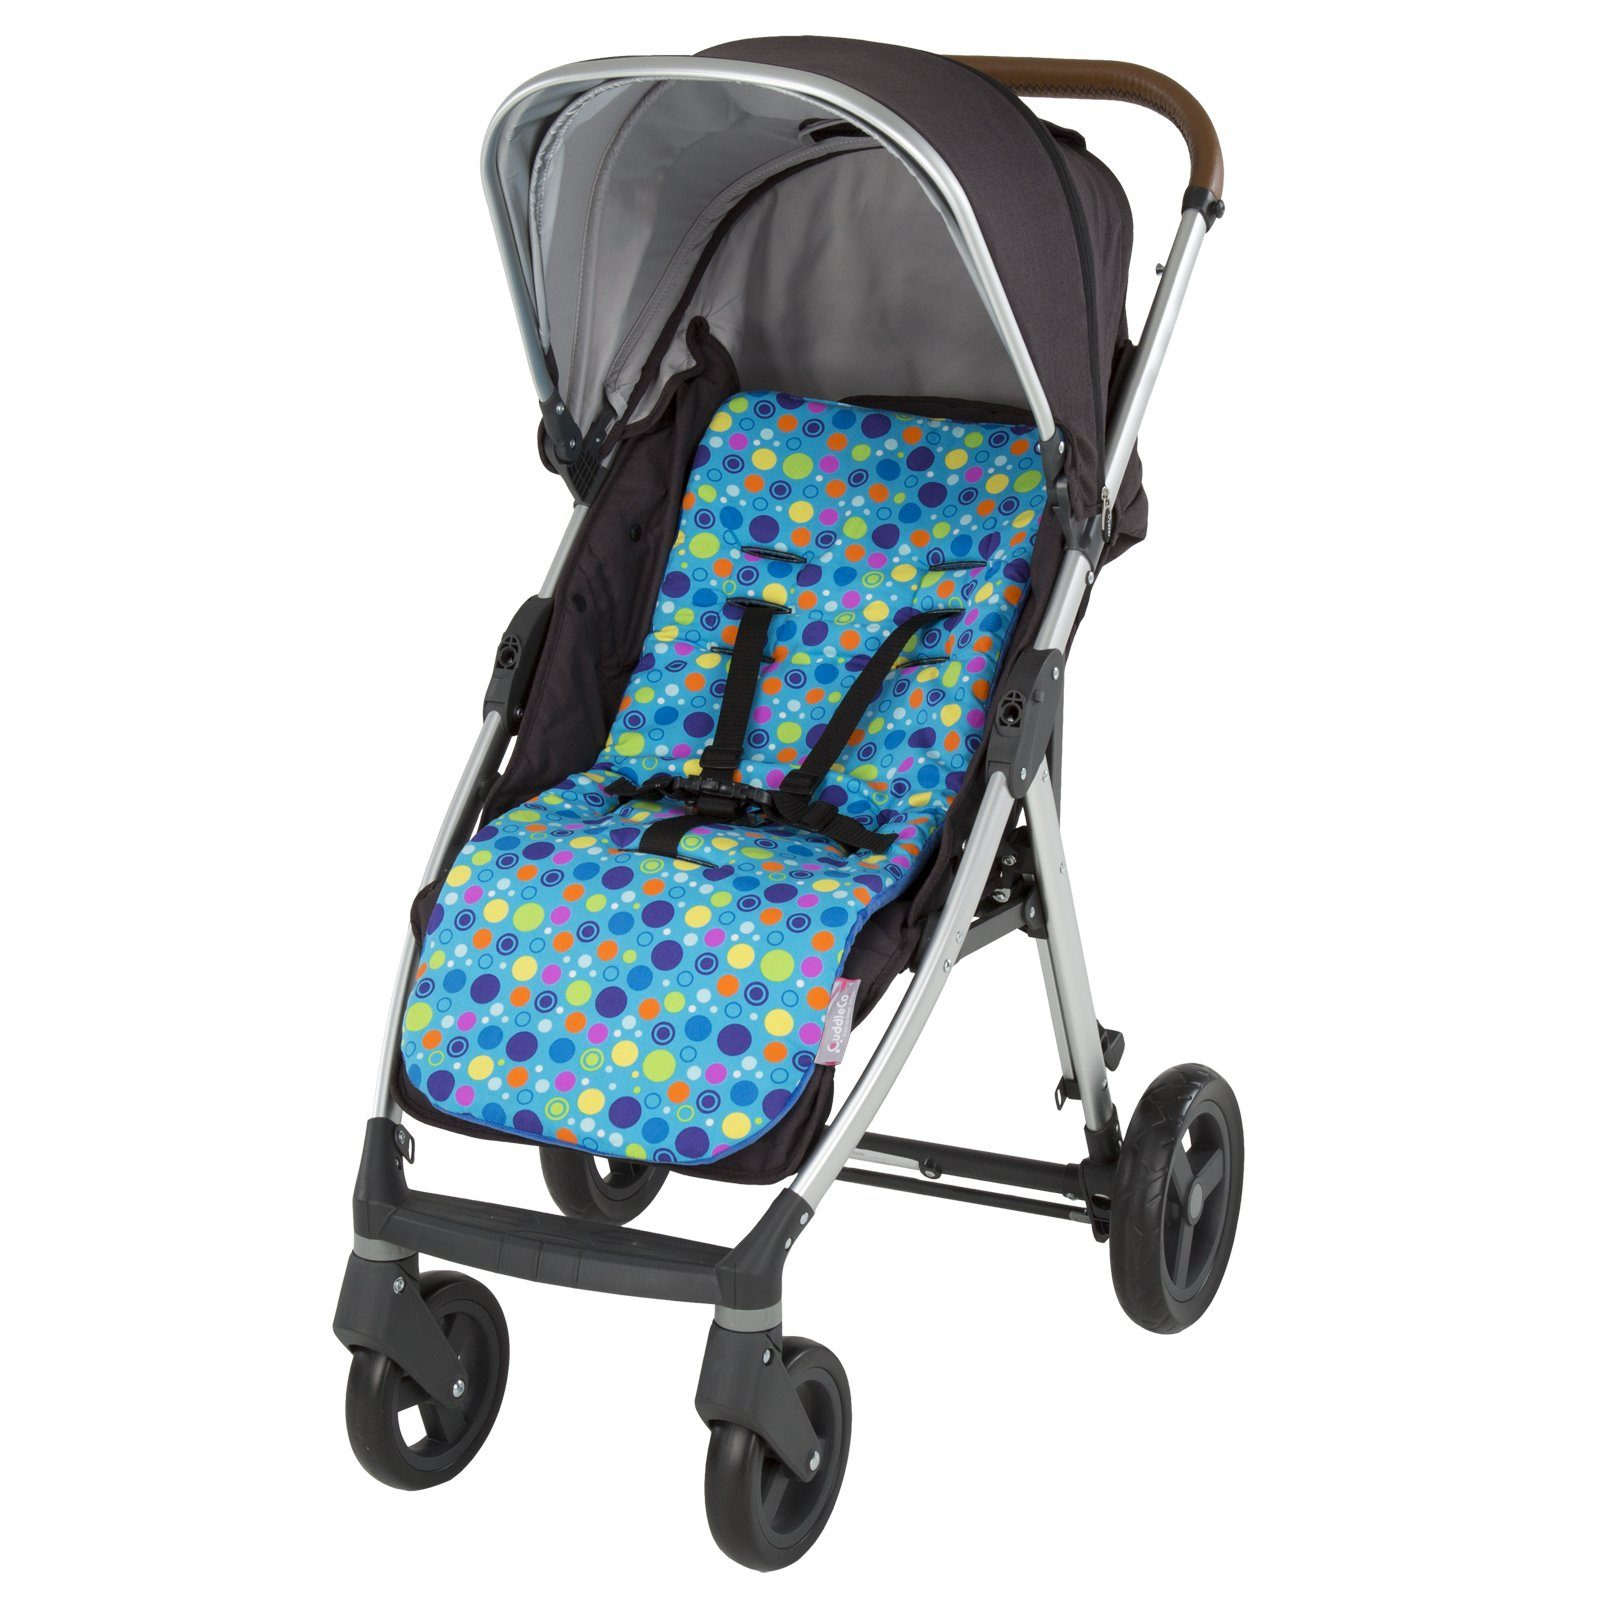 Comfi-Cush Memory Foam Stroller Liner - Spot the Dot On The Go cuddleco